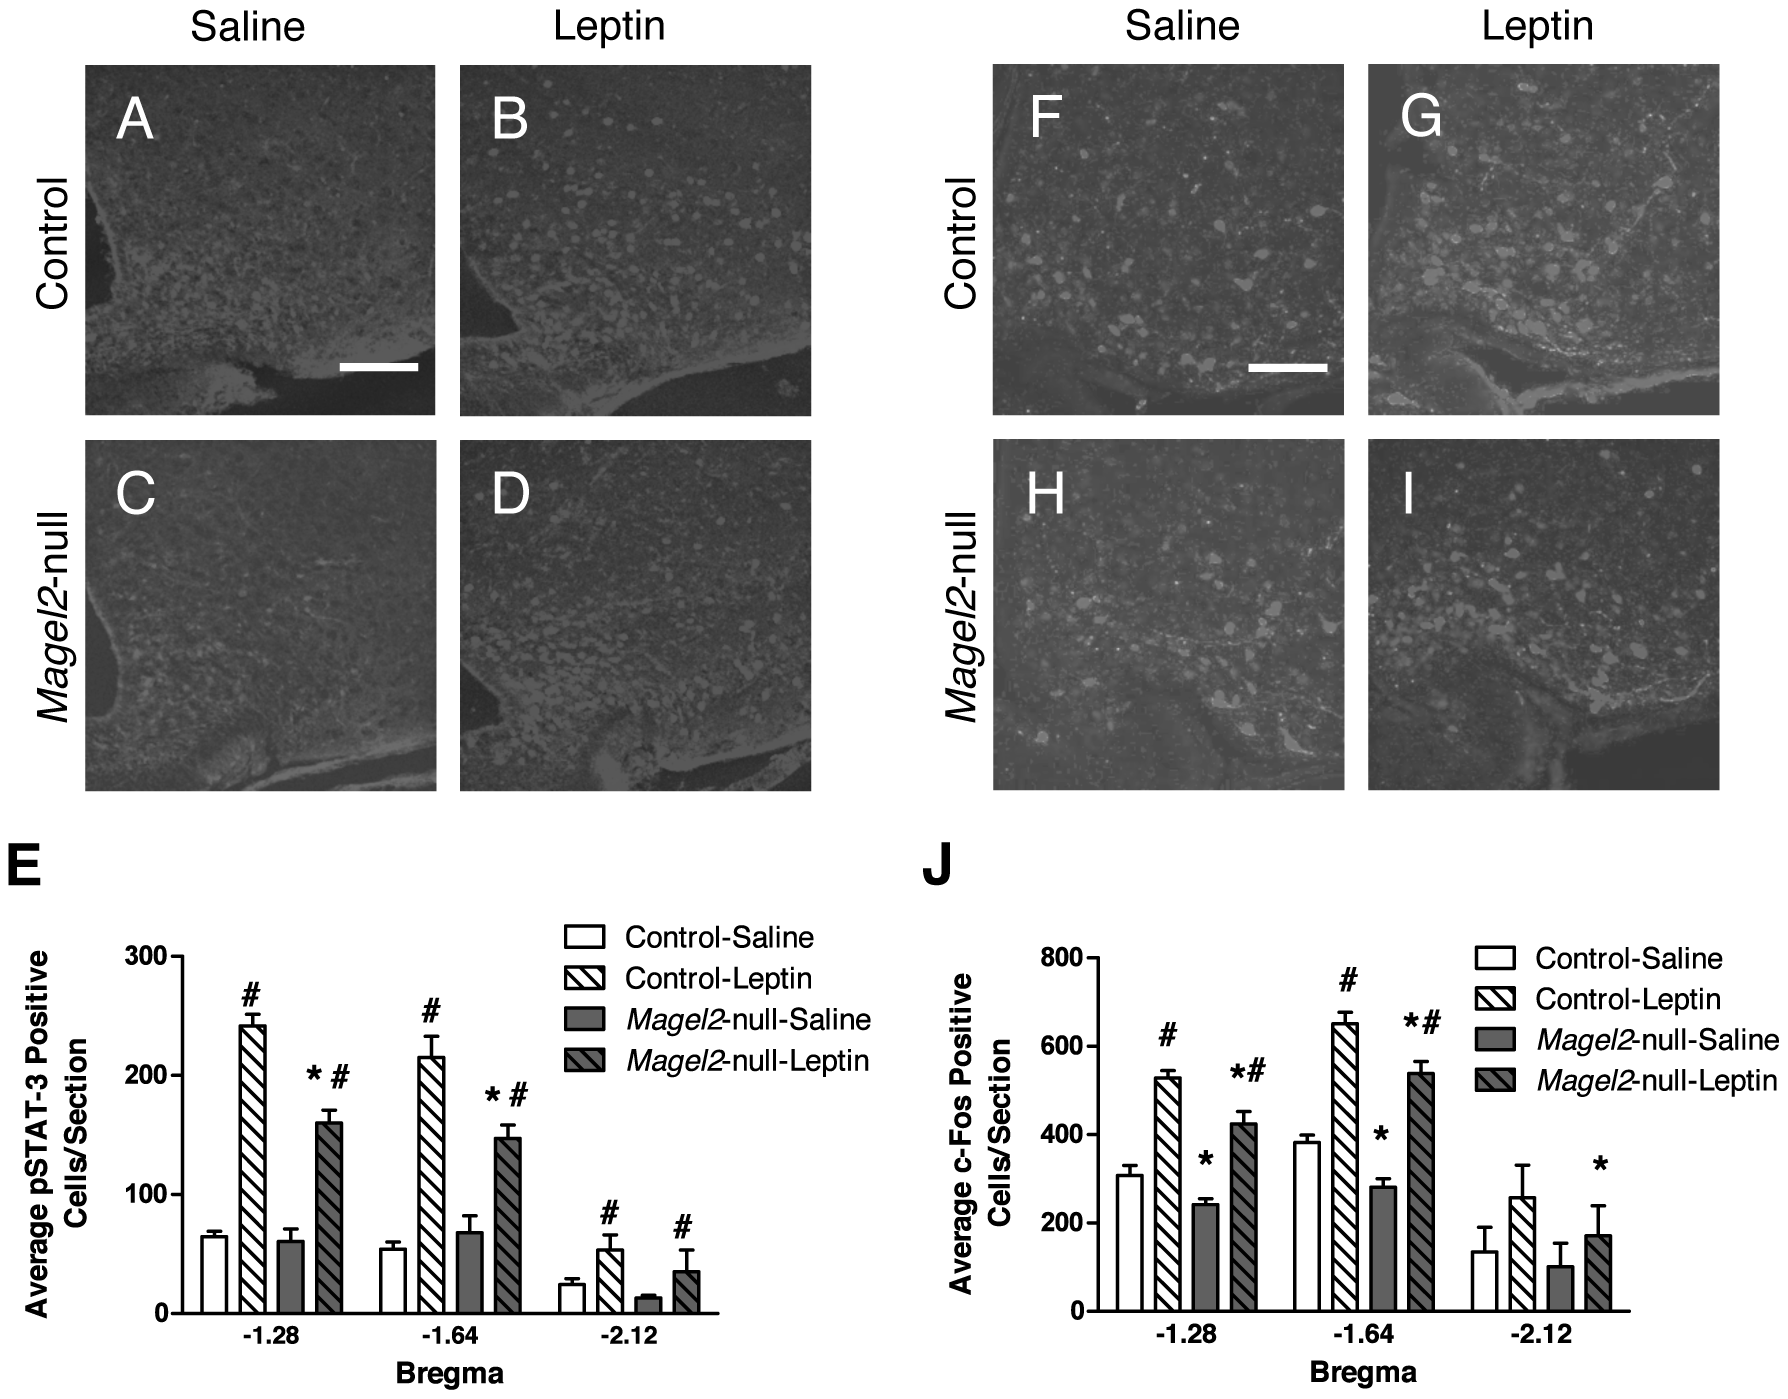 pSTAT3 and c-fos expression in ARC neurons in leptin-treated mice.